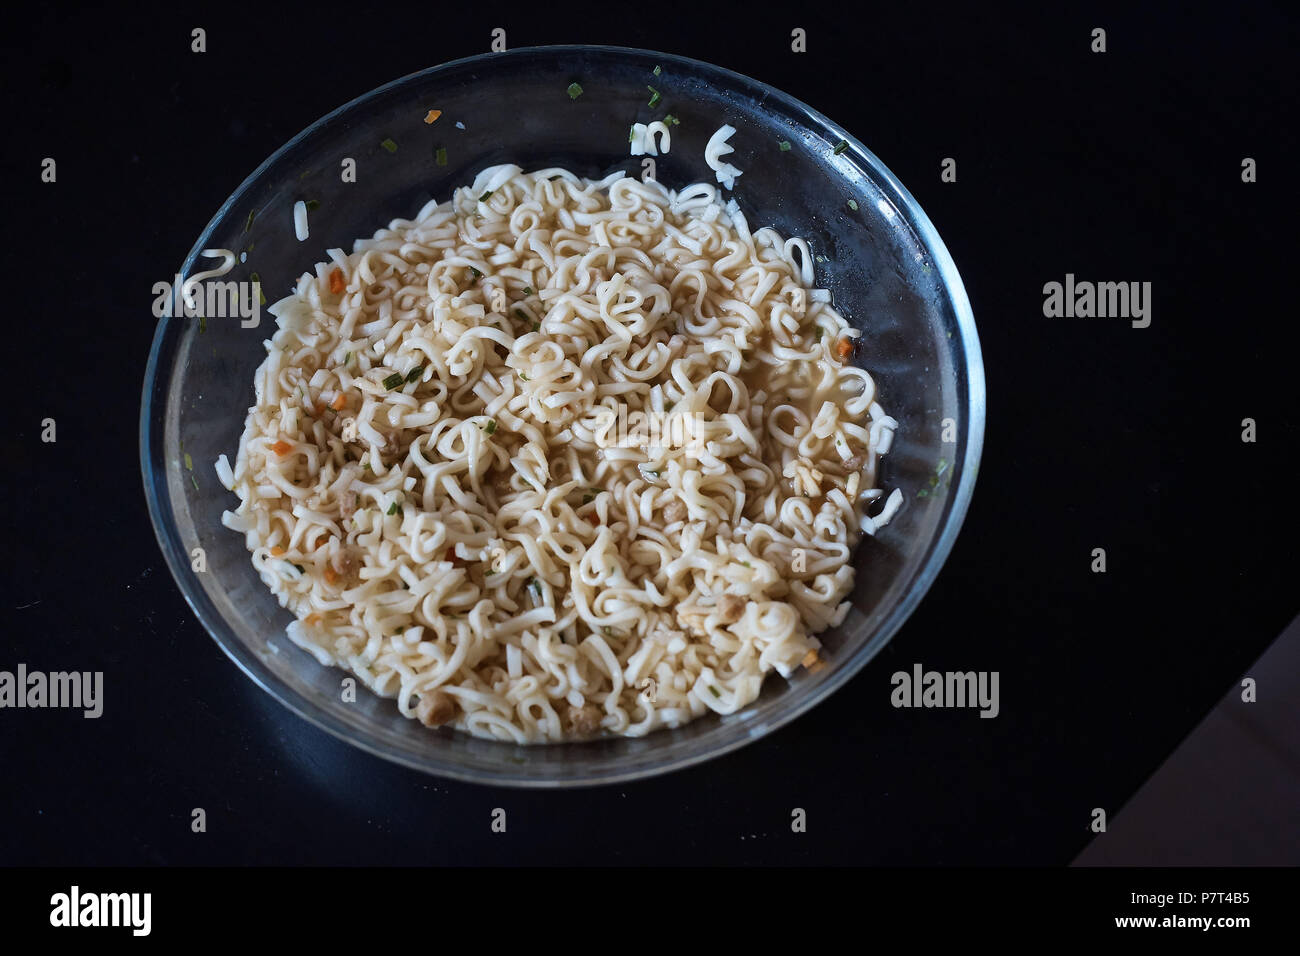 Instant noodles on wood baord - Stock Image